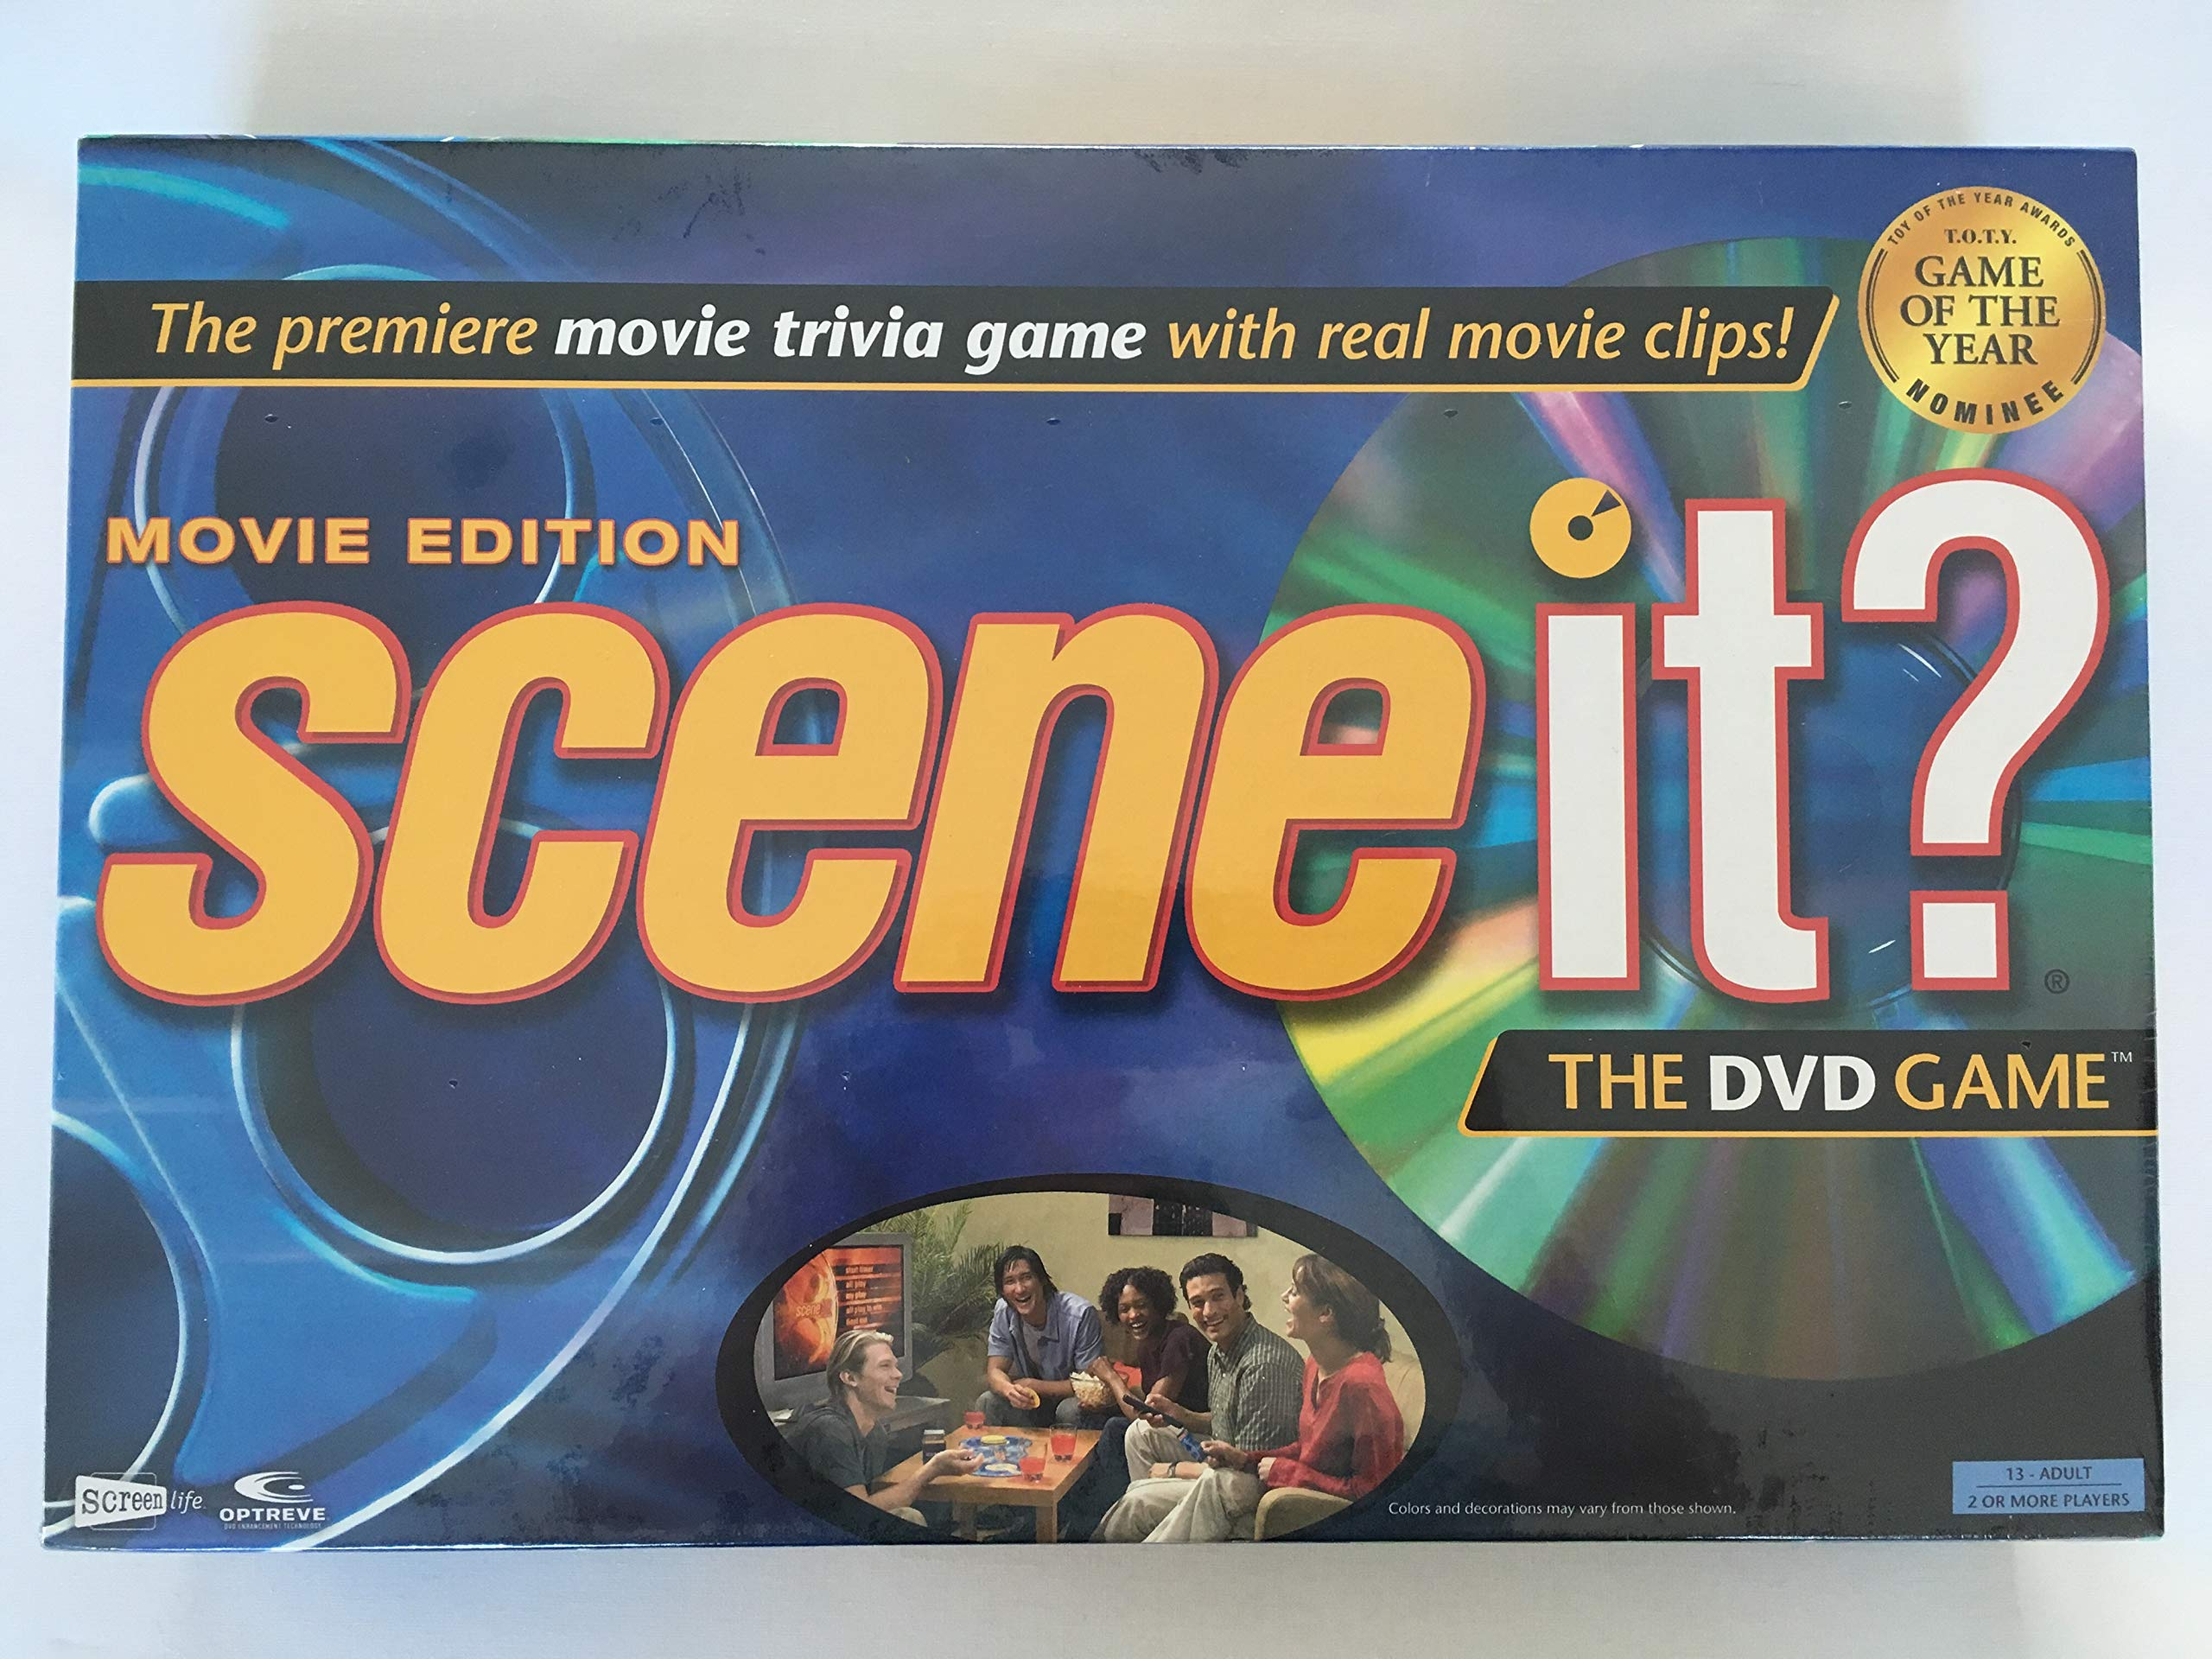 Scene it? Movie Edition DVD Game by Screenlife